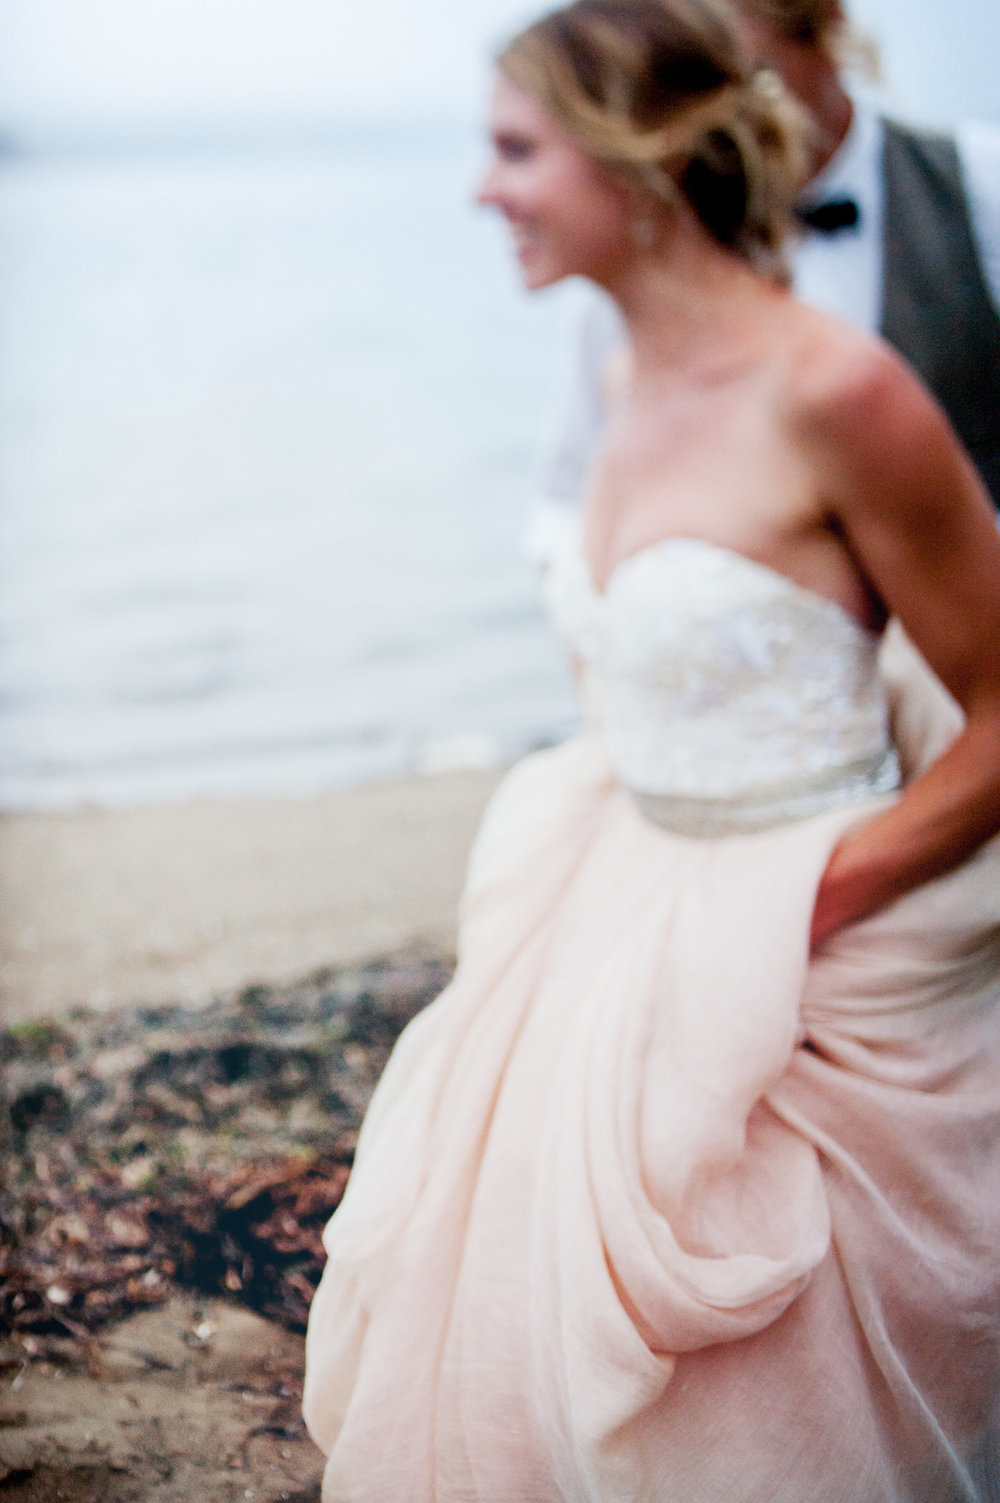 Carol Hannah Bridal Tritea, Kensington, Sequin Smoking Jacket Silver Linings Veil2266.jpg